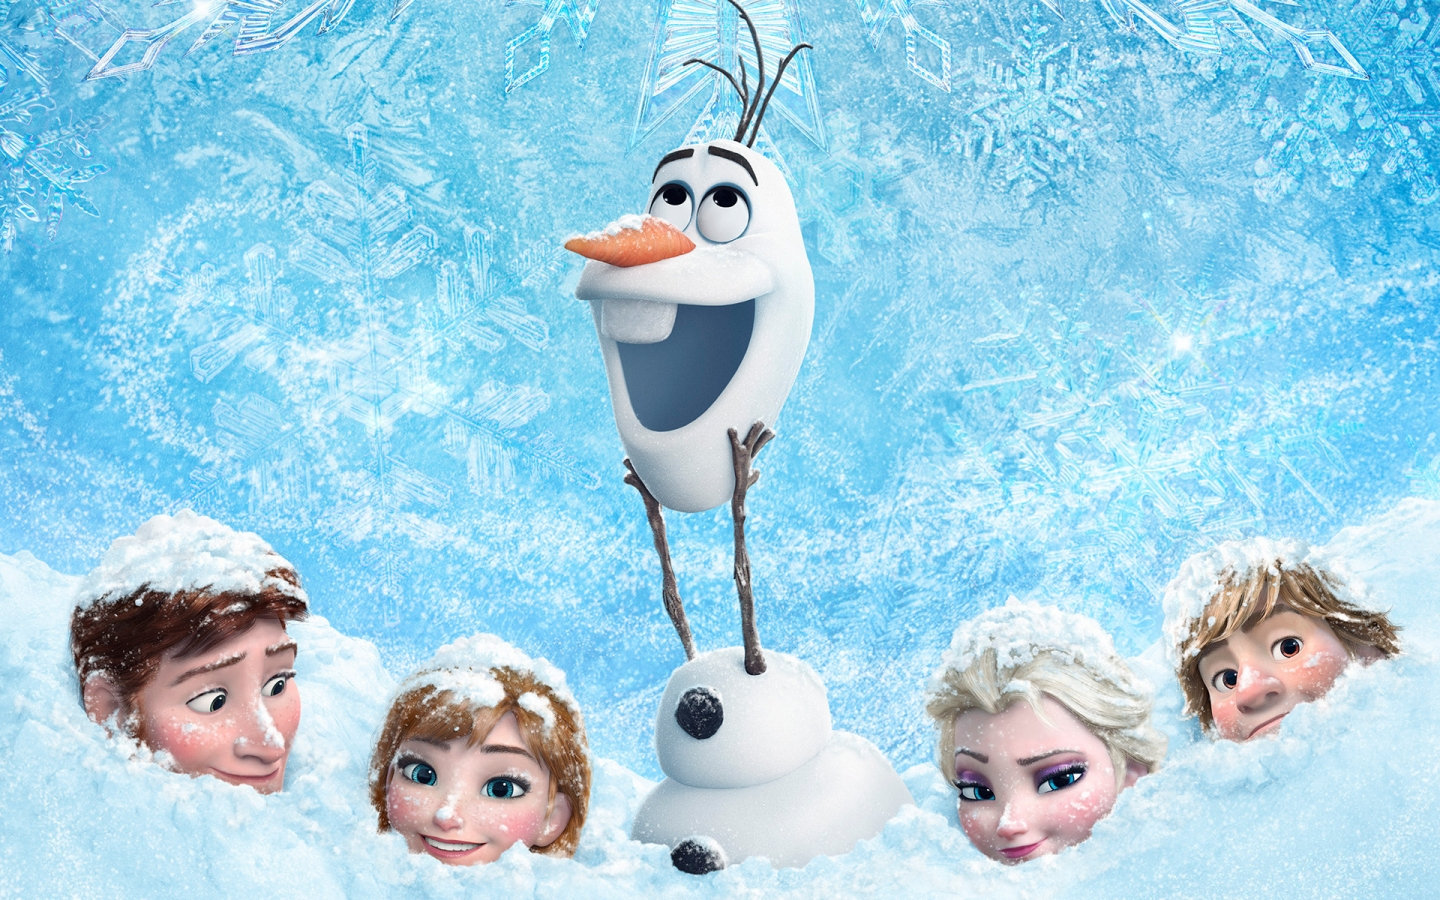 Frozen Animation for 1440 x 900 widescreen resolution